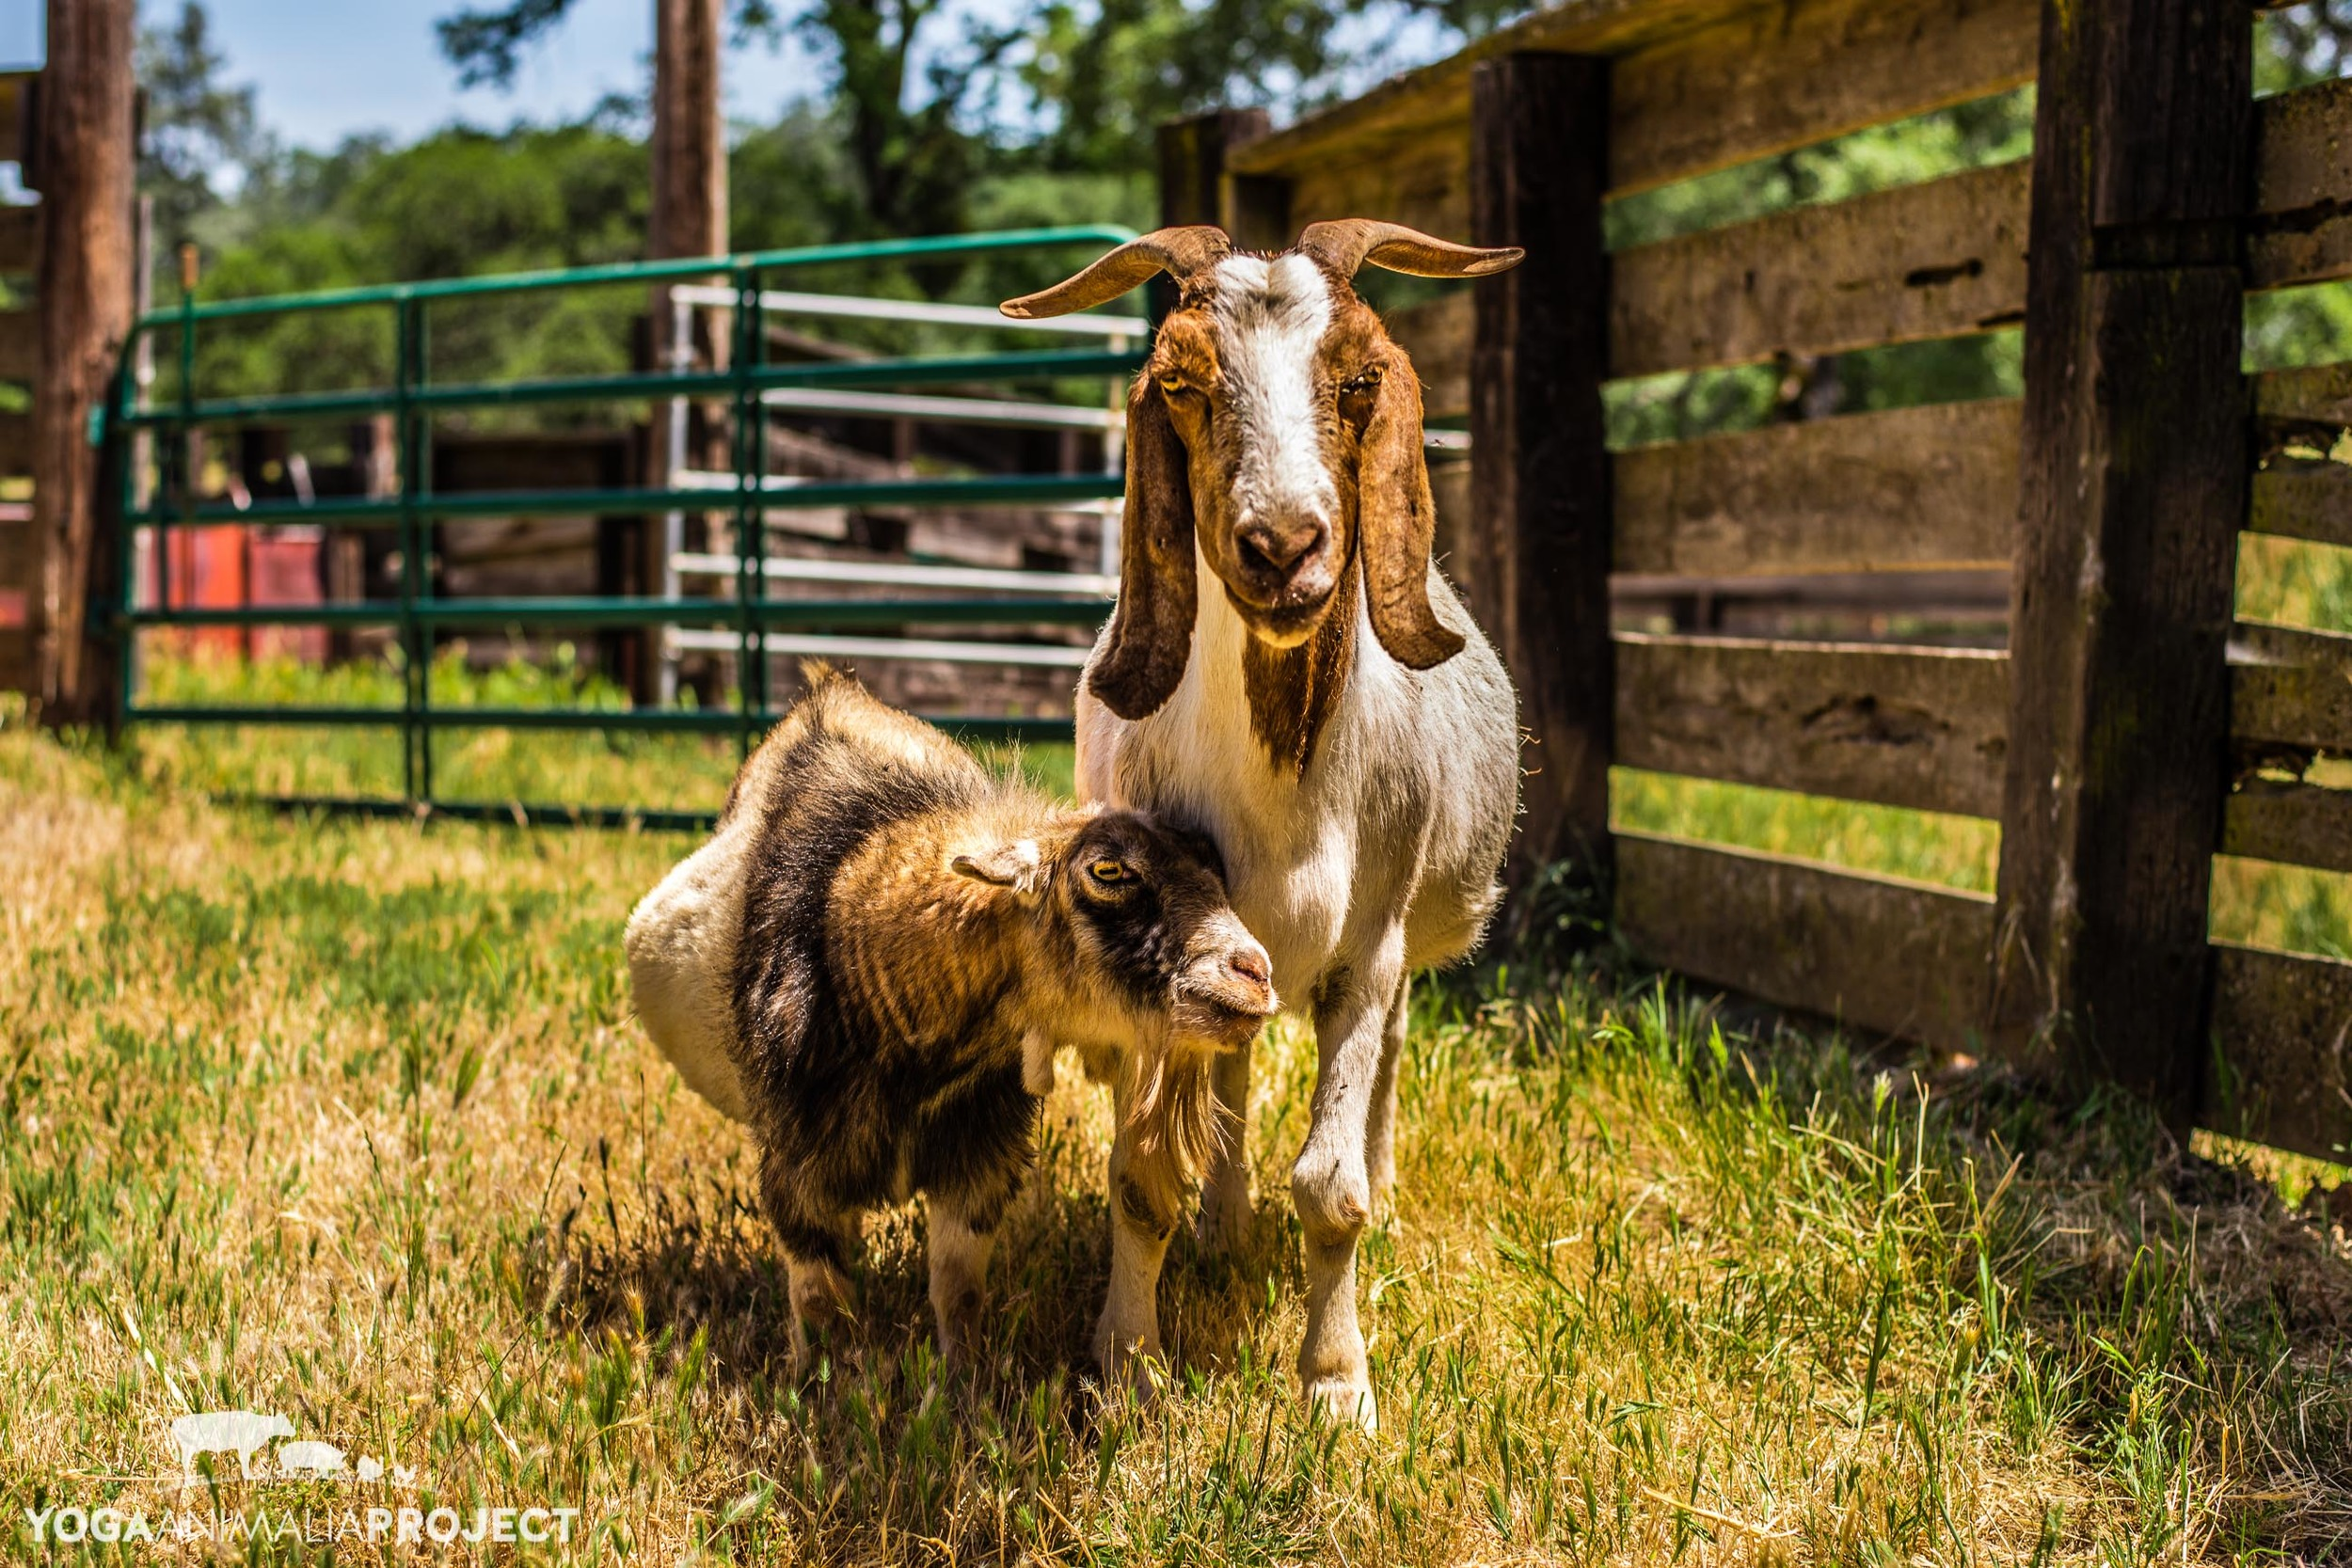 Charlene and Laura, Animal Place, Grass Valley, California